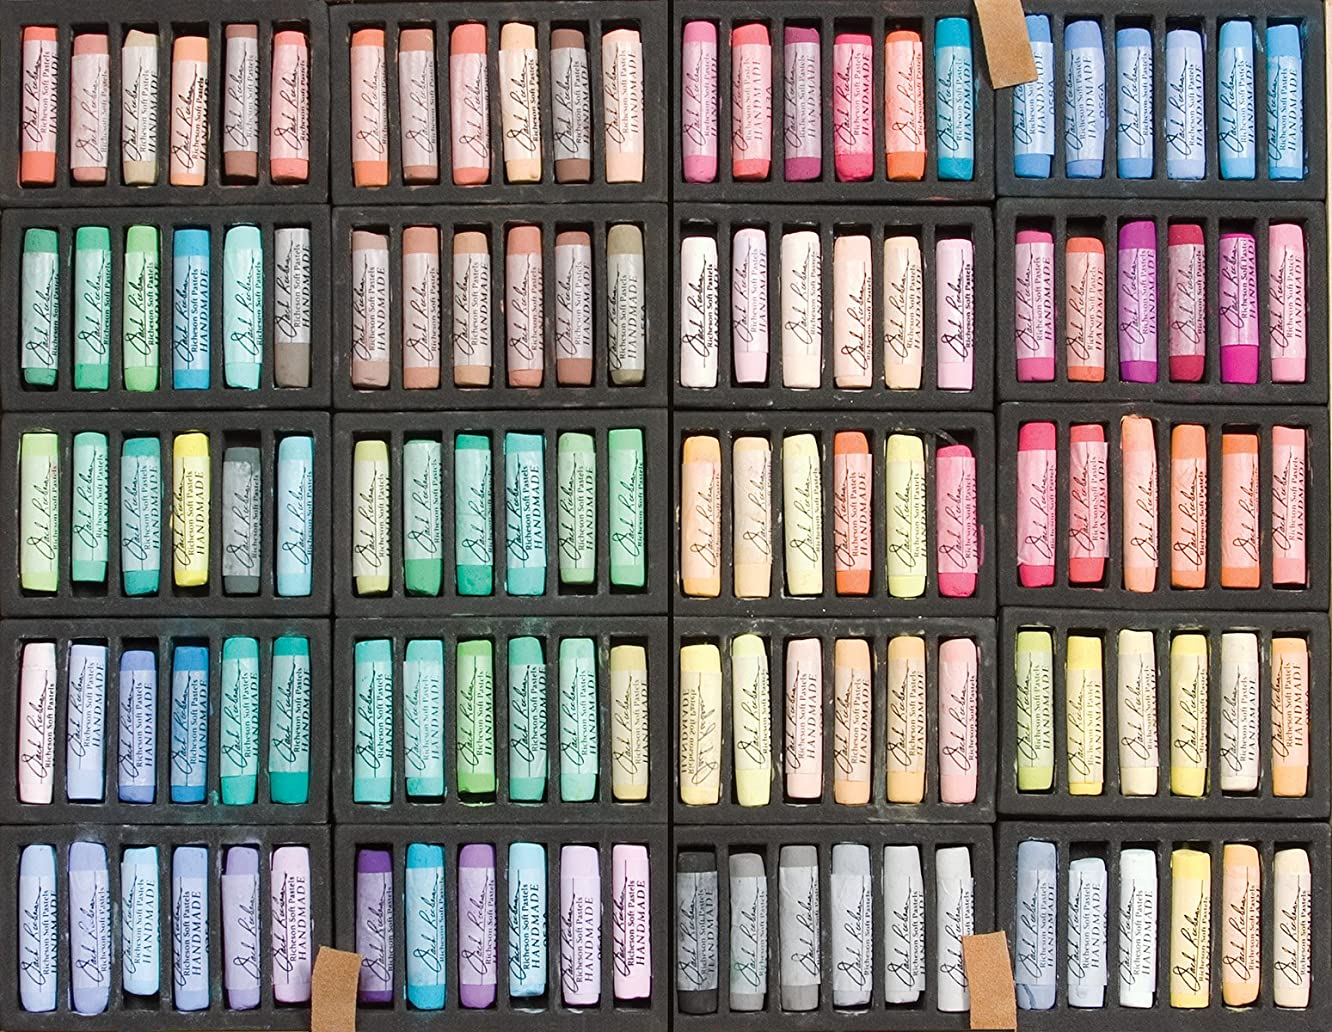 Jack Richeson Handmade Soft Pastels in a Wooden Box, 120 Assorted Colors